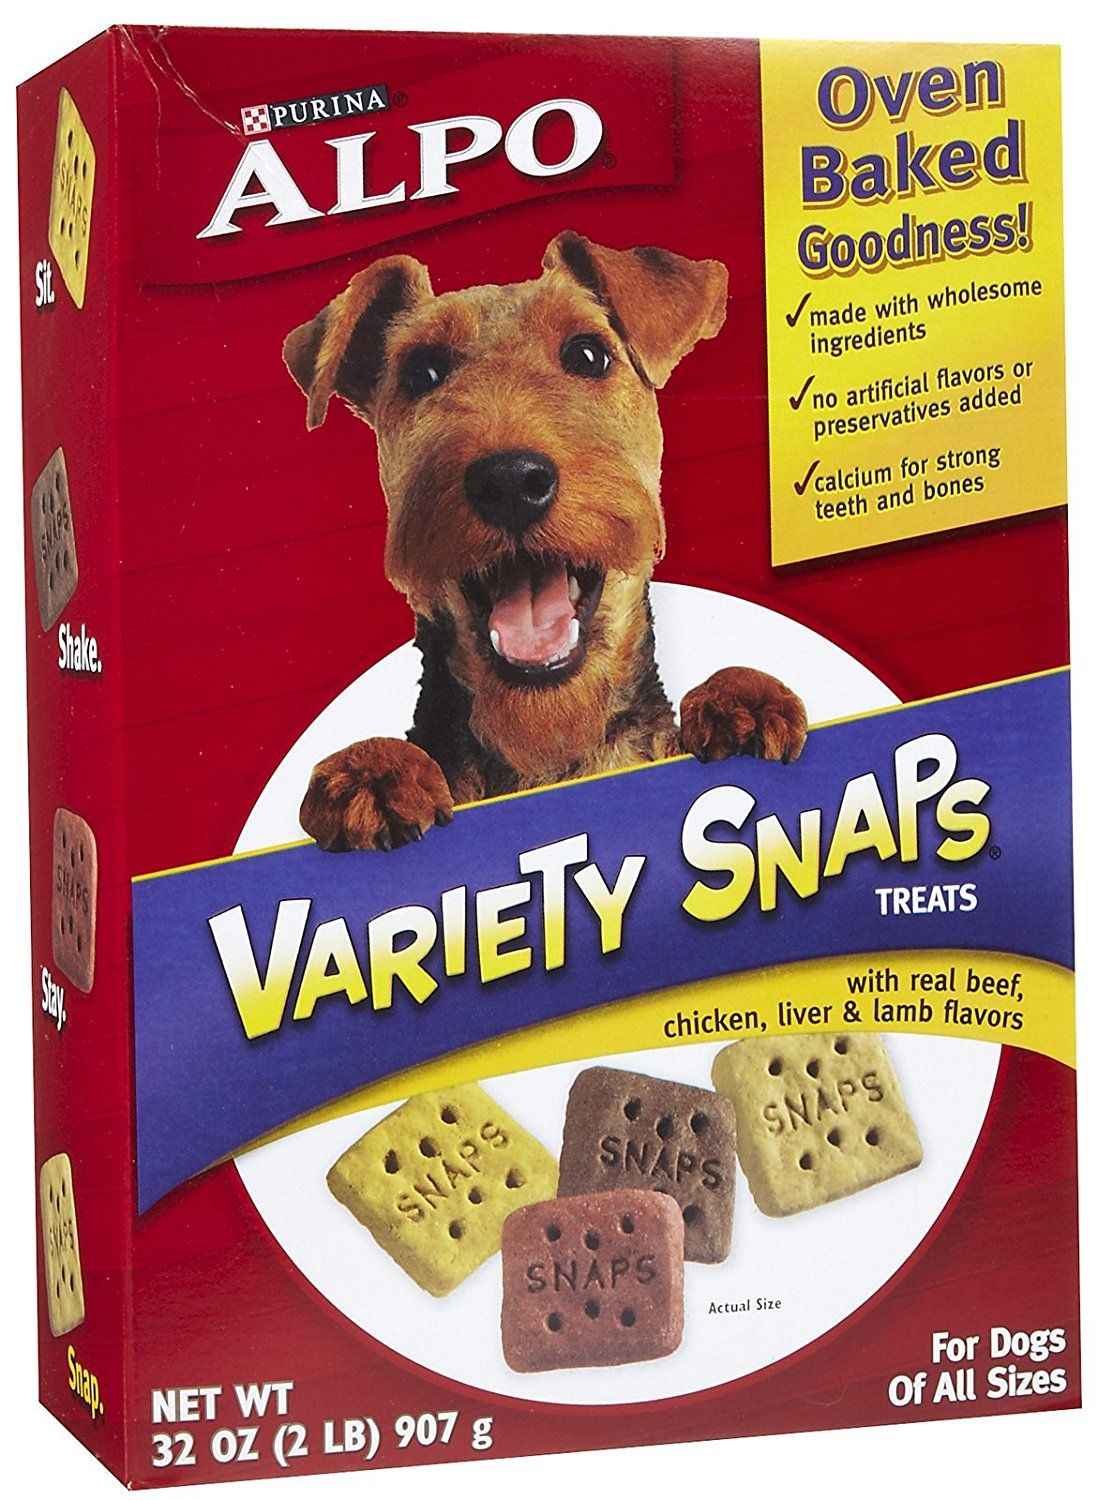 Alpo snaps treats with real meat variety pack 32 oz